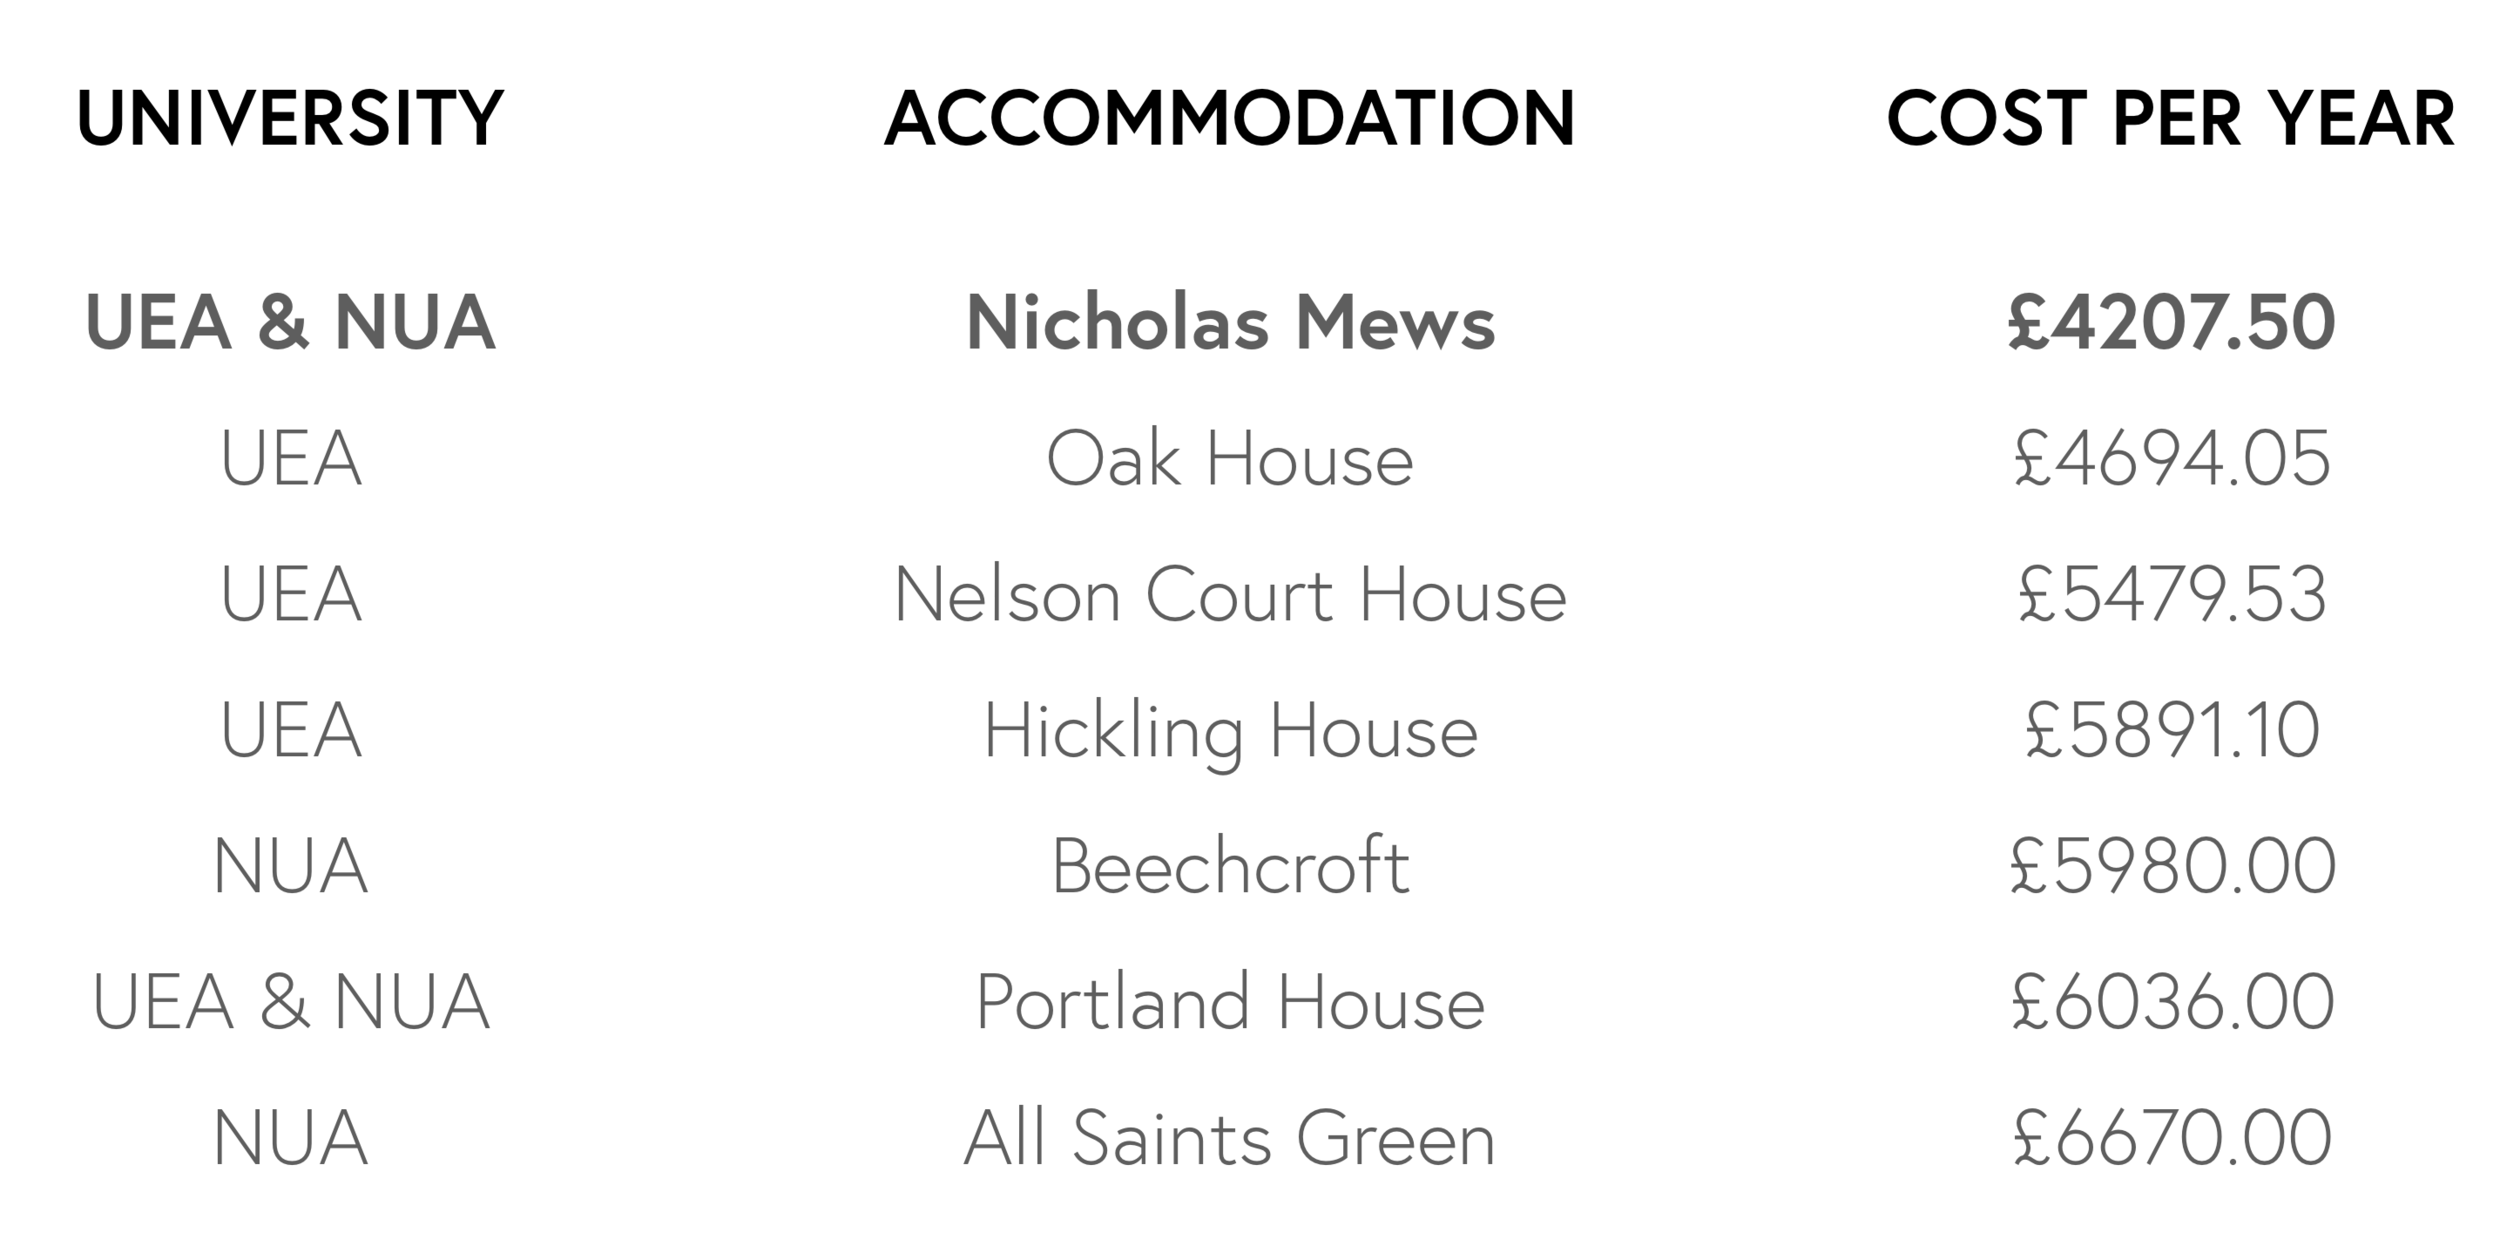 Nicholas Mews is Norwich's best value student accommodation